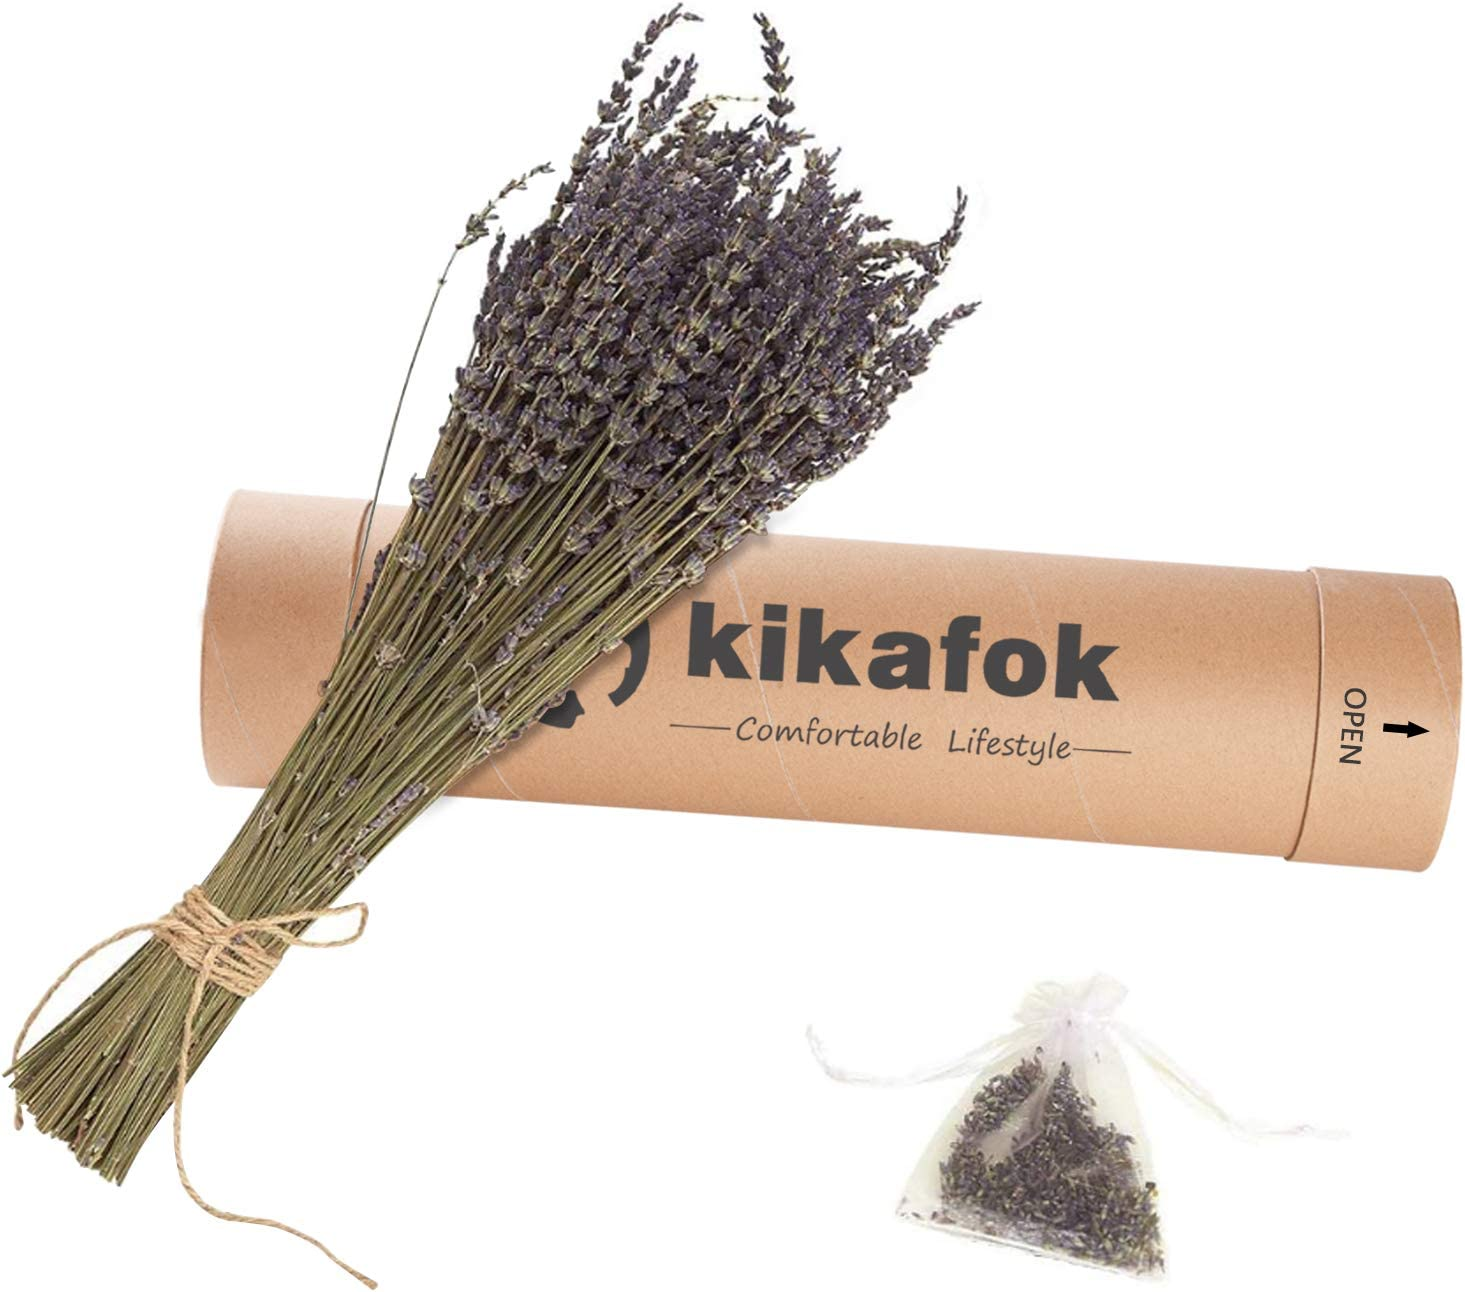 kikafok 200 Stems Dried Lavender Bundles,Handmade Never Withered Natural Lavender Flowers , with Strong Paper Tube Packaging, for Home Decoration, Courtyard Decor , Home Fragrance.